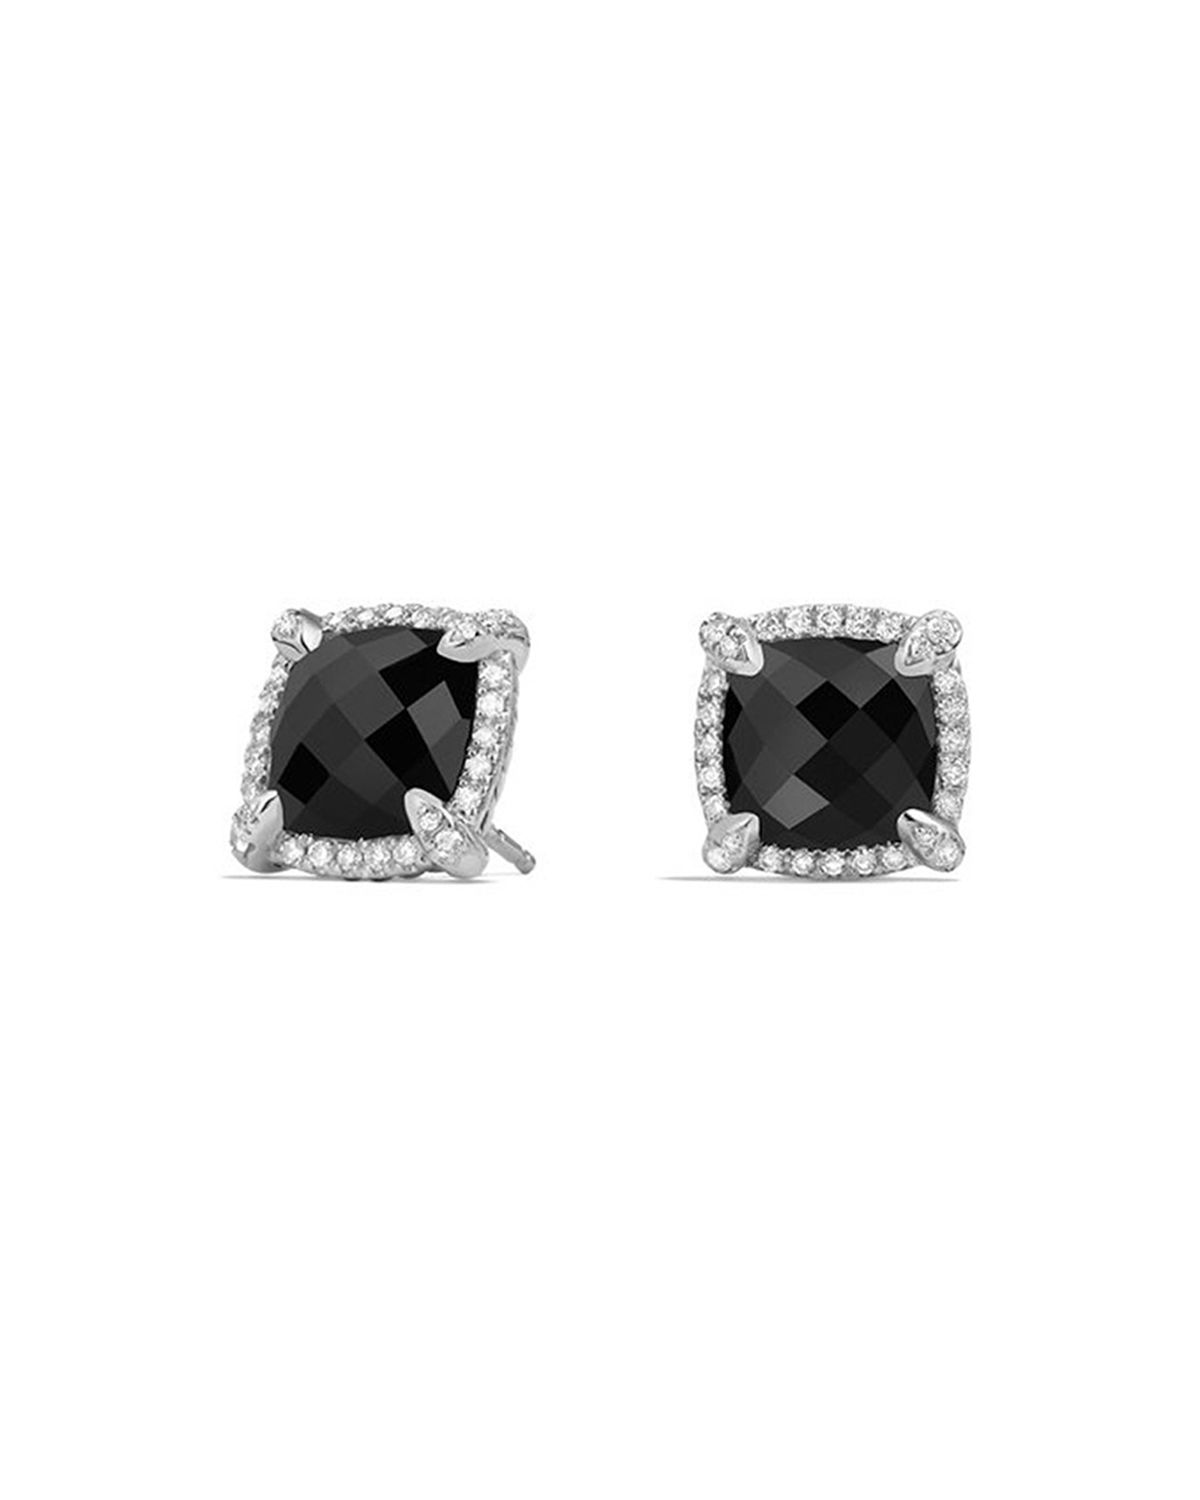 9mm Chatelaine Stud Earrings with Diamonds